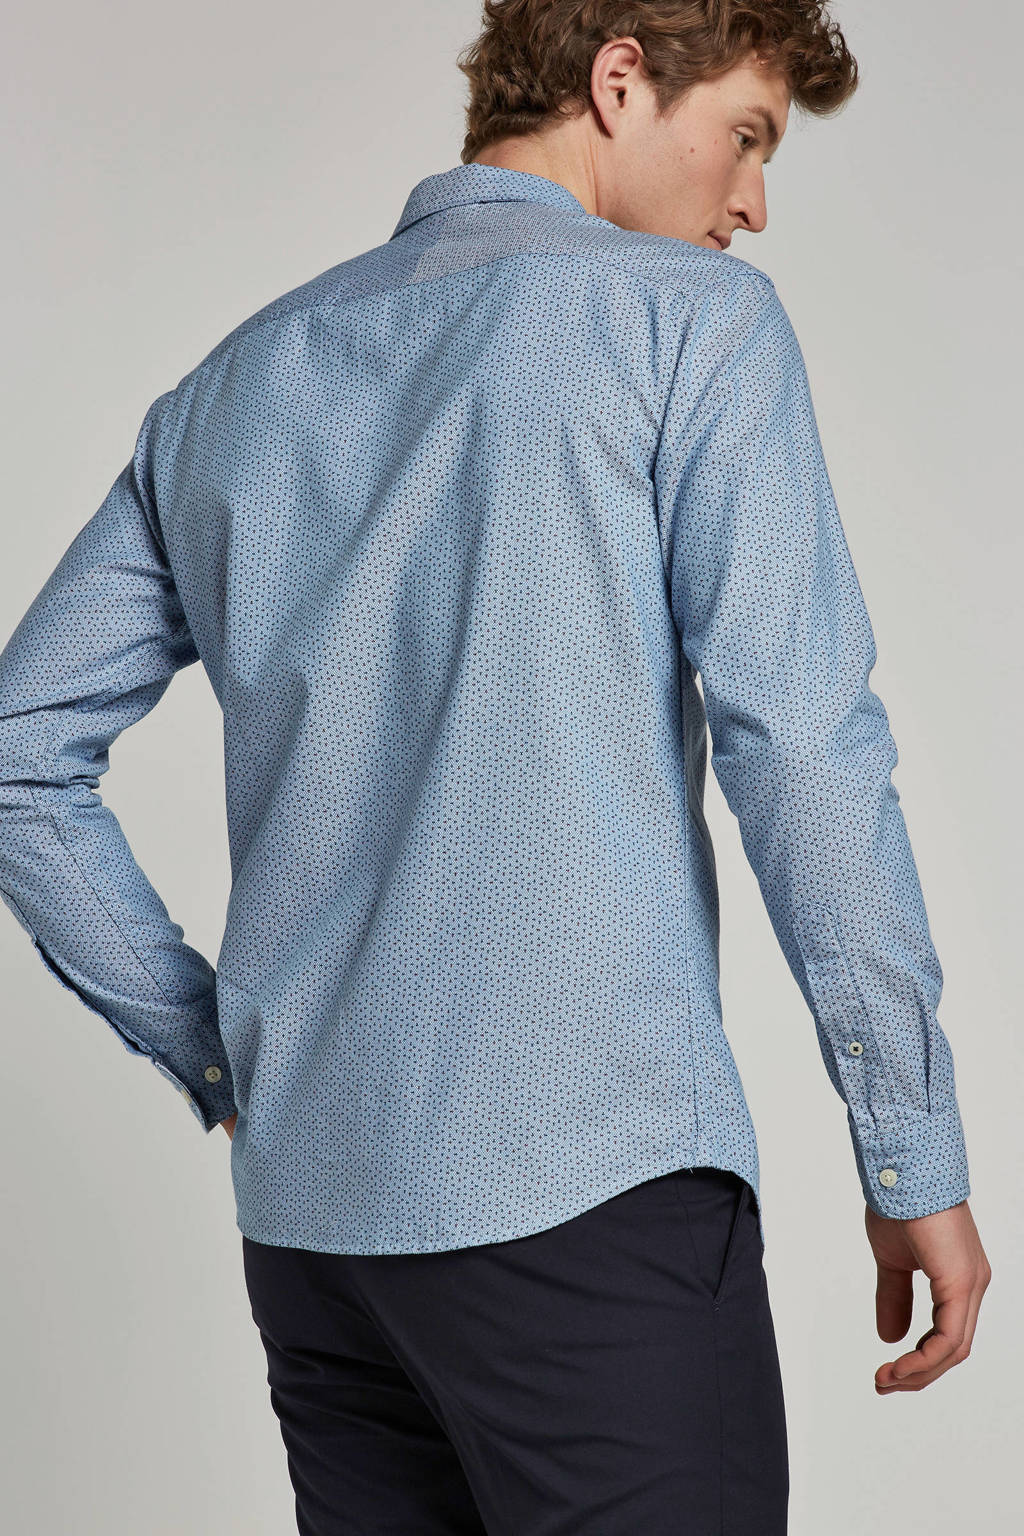 SELECTED HOMME slim fit overhemd, Blauw